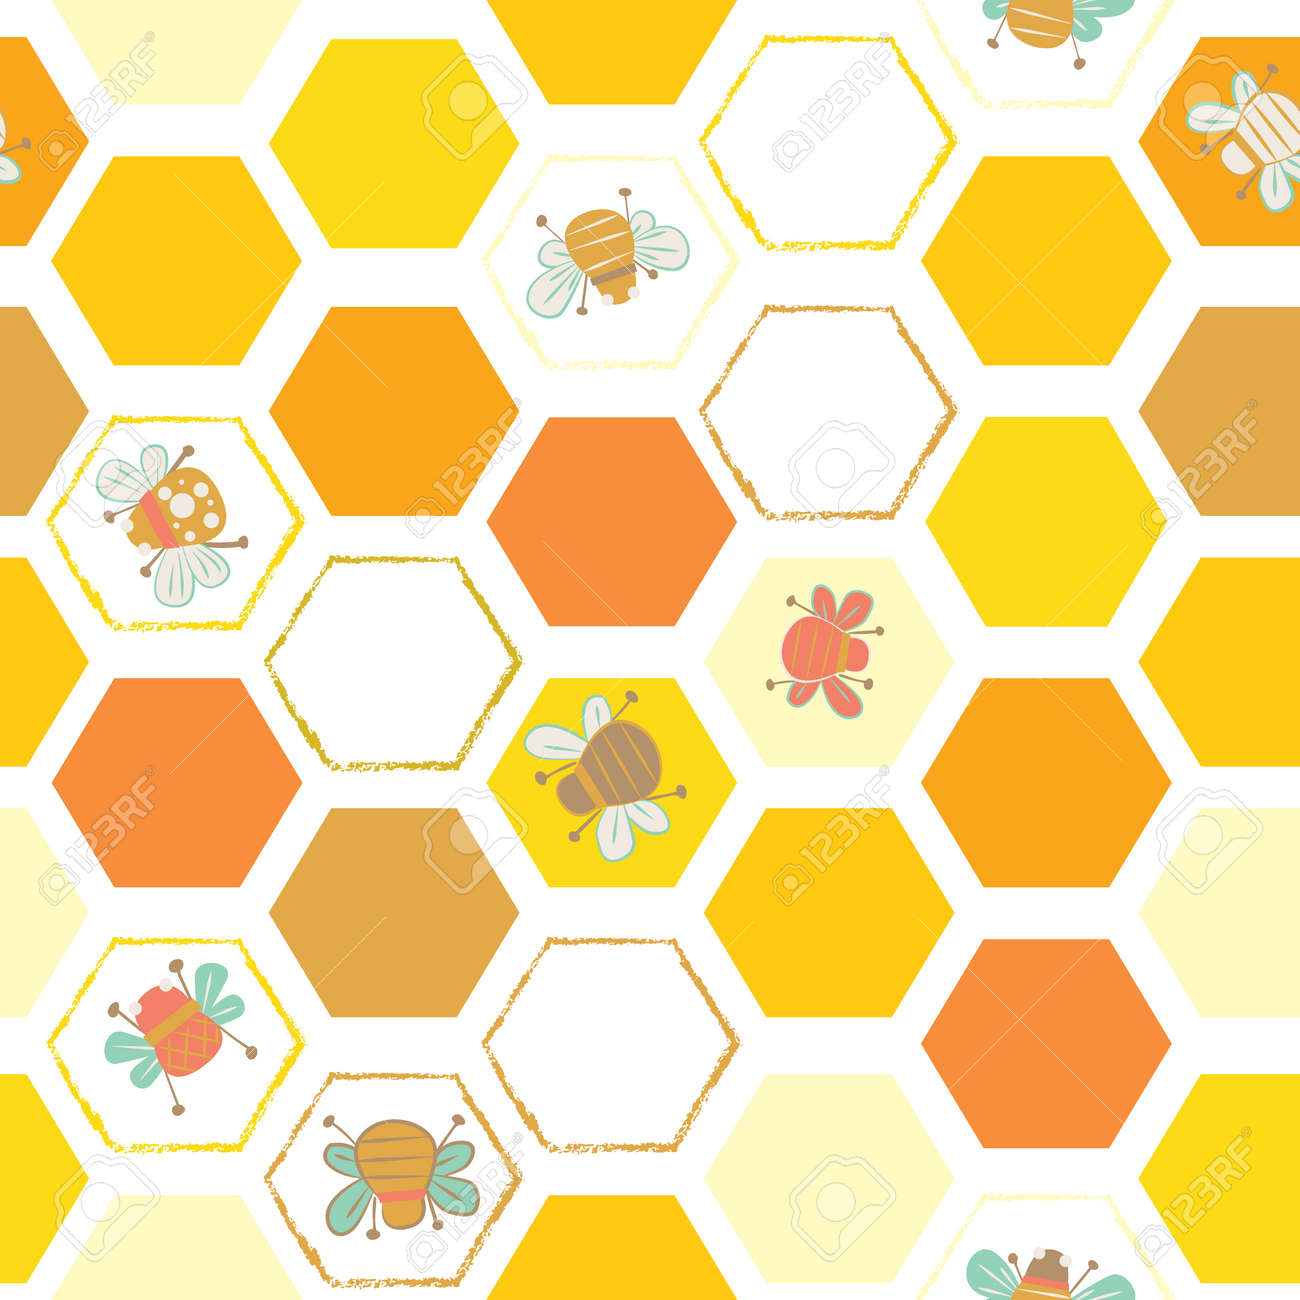 Vector Yellows Hexagonal Tiles With Bees Seamless Pattern Background Royalty Free Cliparts Vectors And Stock Illustration Image 110155464